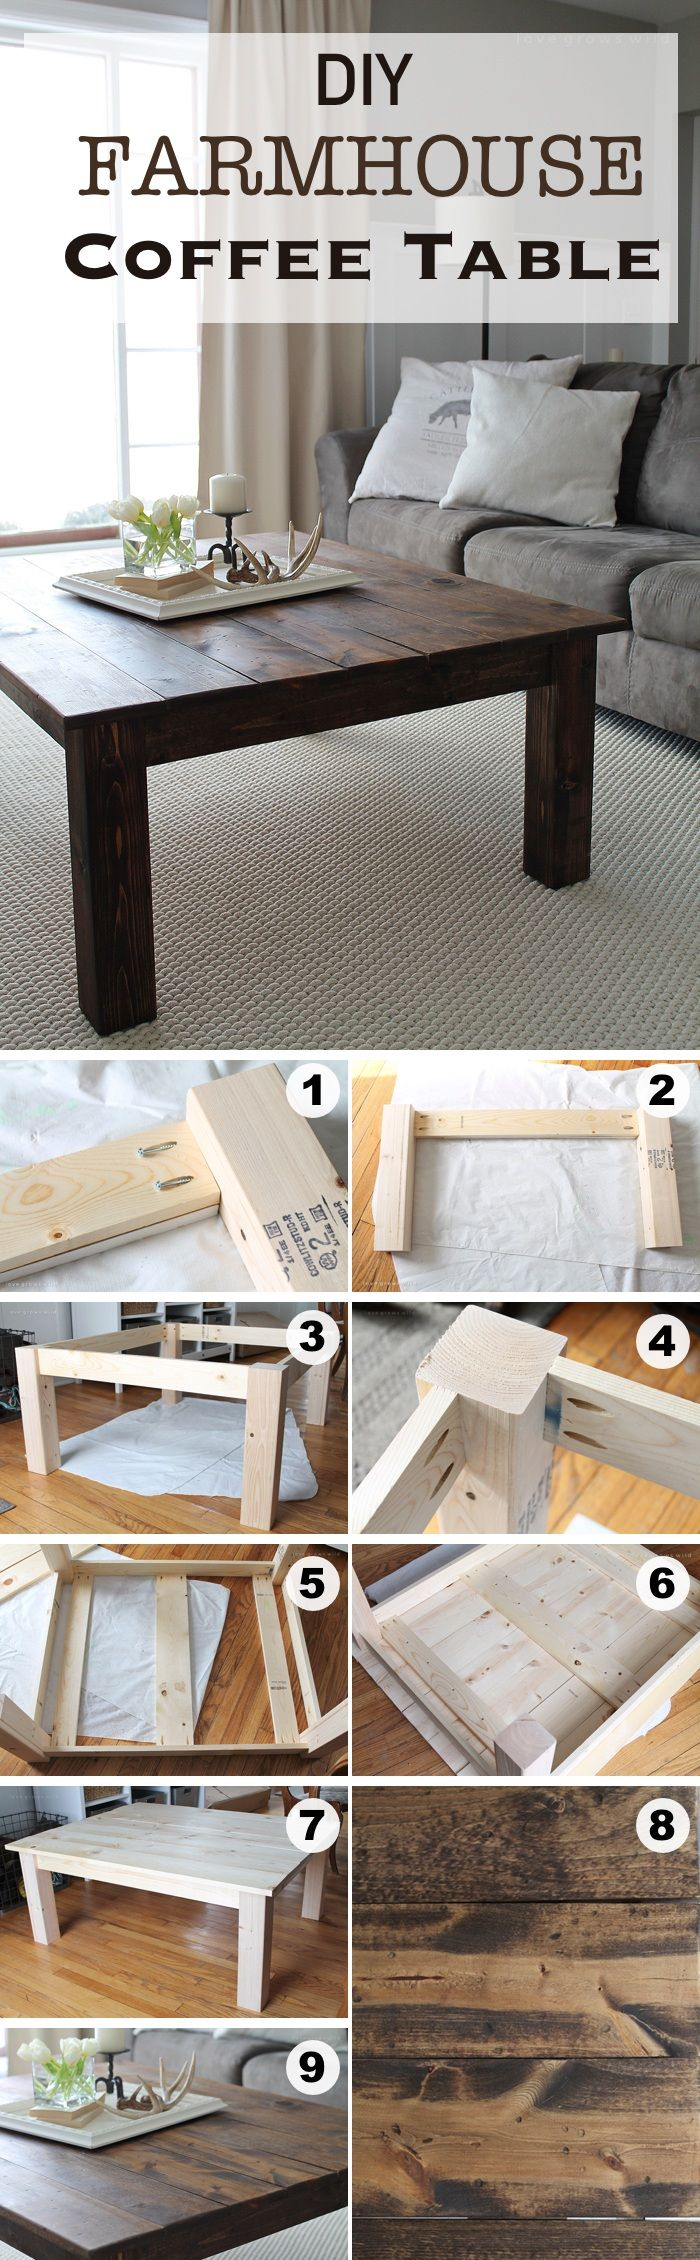 DIY Farmhouse Coffee Table / Tis Table Is Built To Last, Has The Potential  To Be Personalized With Stain And Paint, And Is Large Enough To Fit  Wonderful ...